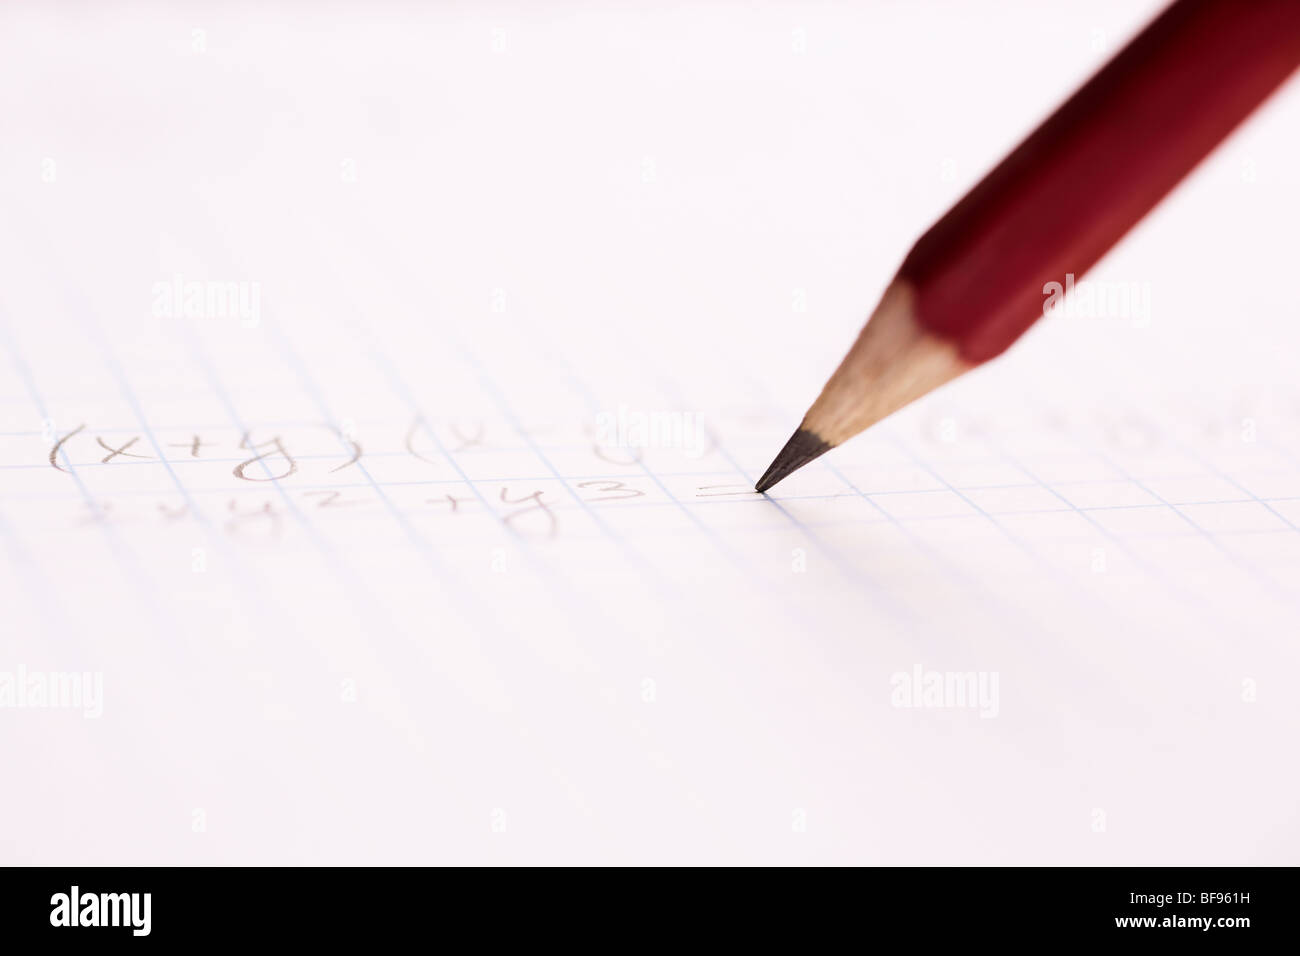 selective focus on center of photo, writing part of pen - Stock Image